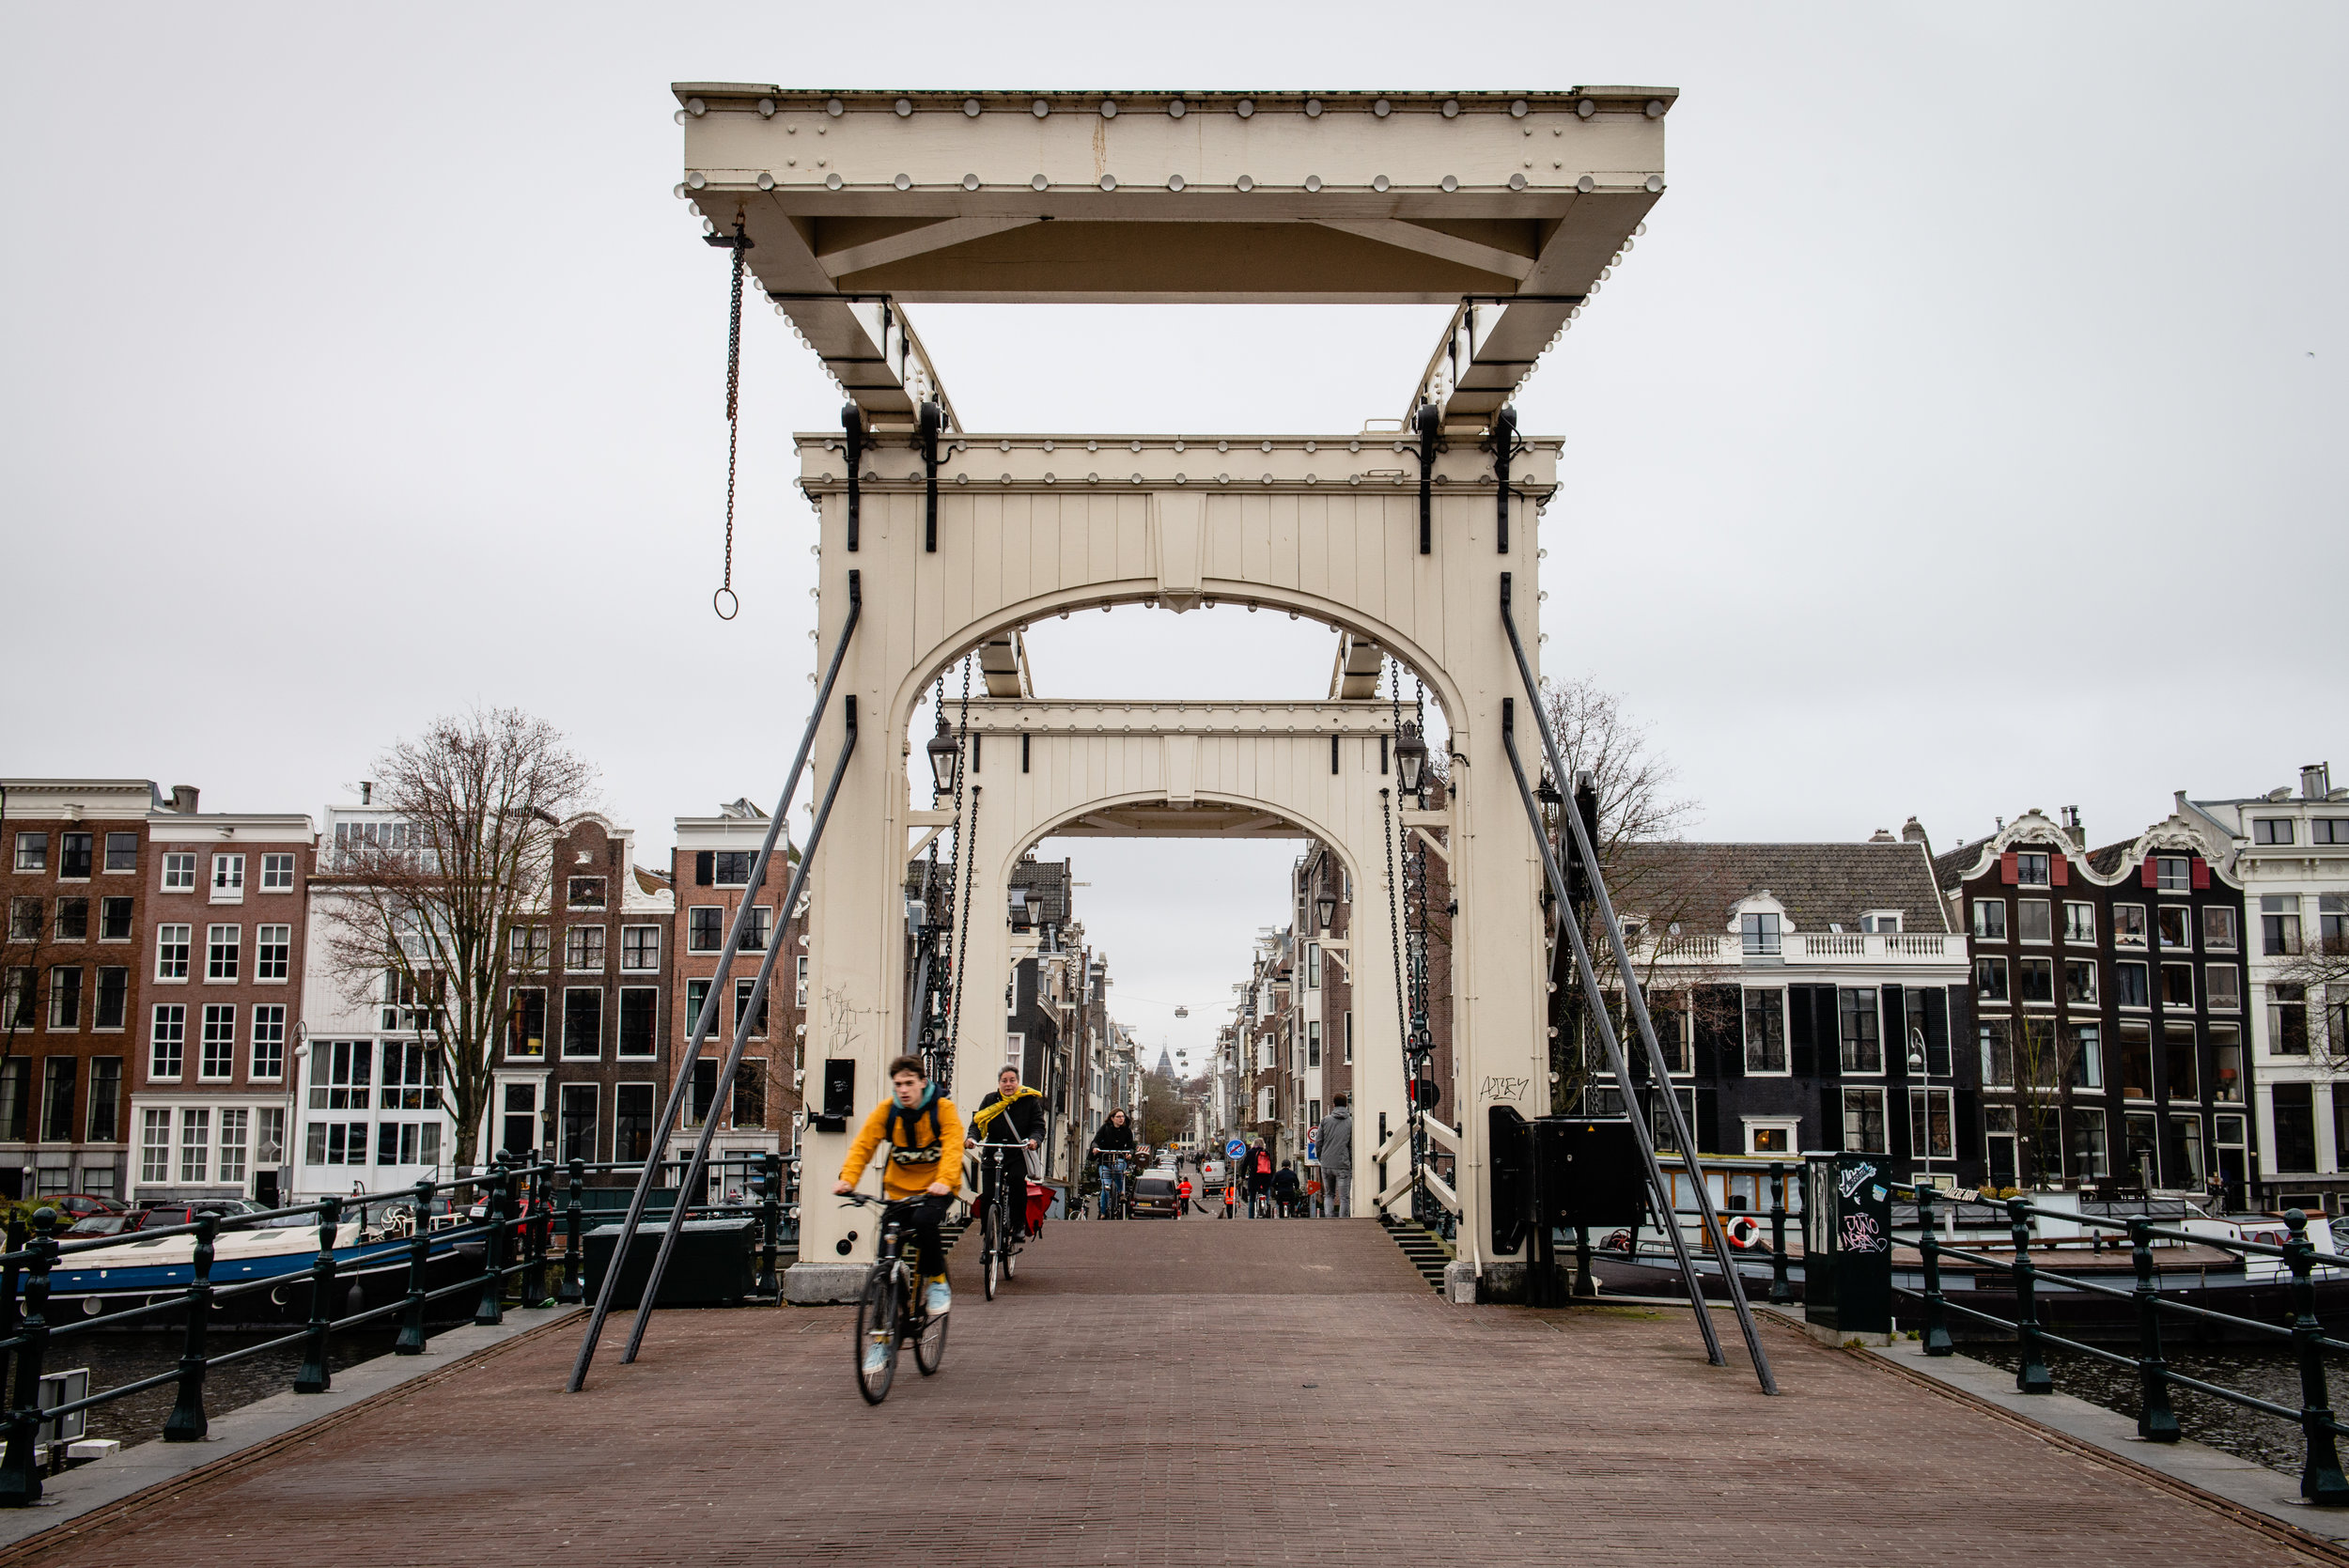 Drieharingenbrug  PHOTOGRAPHY: William Lounsbury • NIKON D800 • AF-S NIKKOR 24-70MM Ƒ/2.8G ED @ 34MM • Ƒ/8 • 1/50 • ISO 400